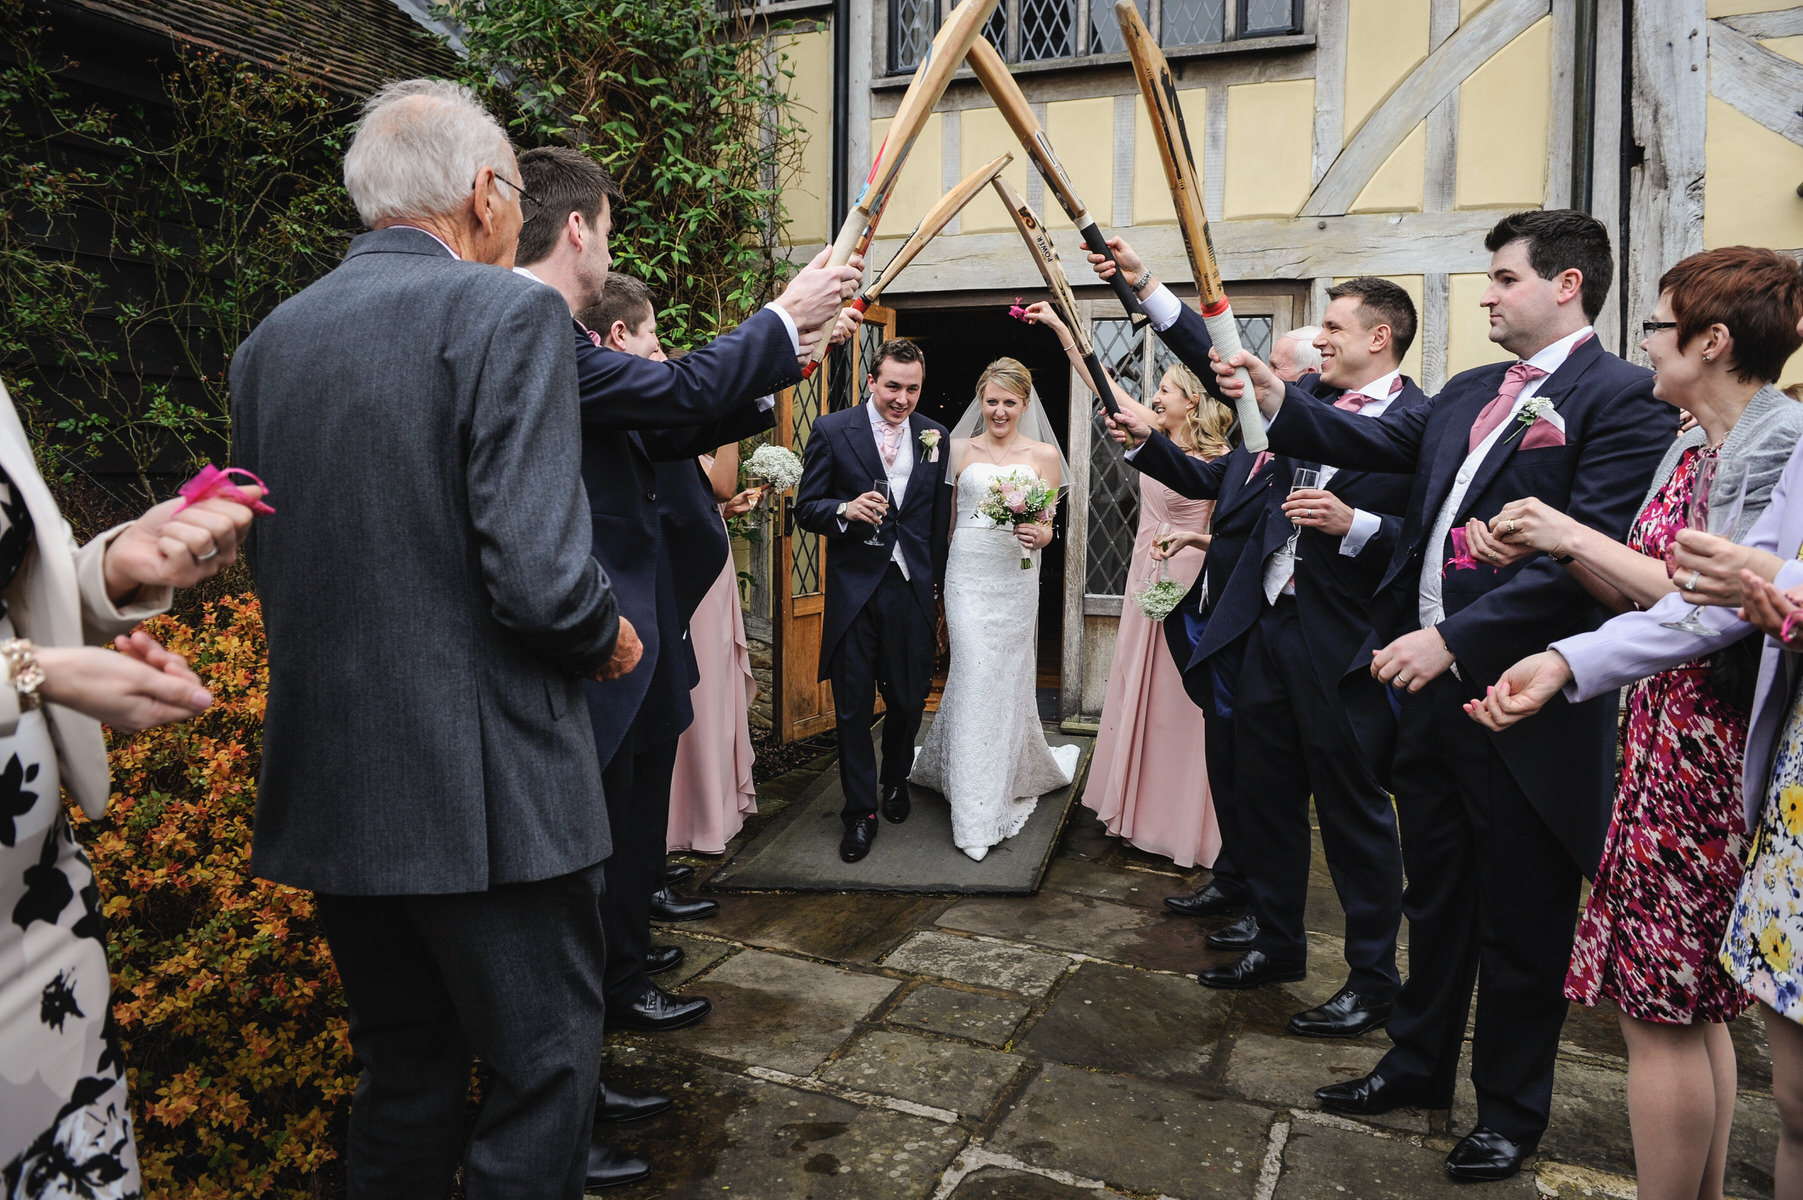 Cain Manor wedding couples exit under cricket bats